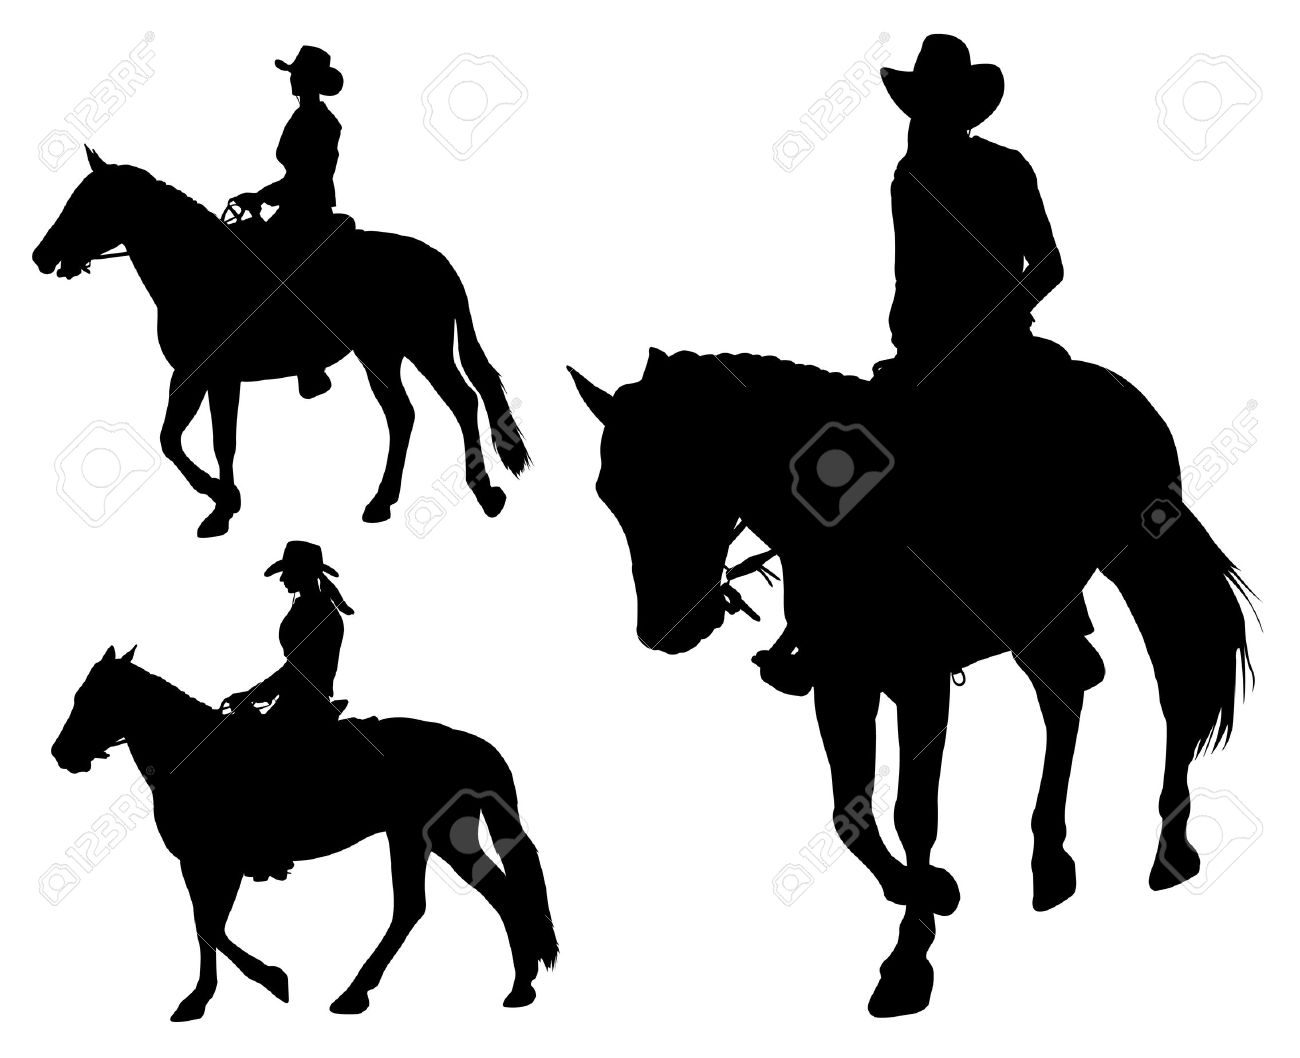 Western Horse Riding Clipart Vector - cowgirl riding horse